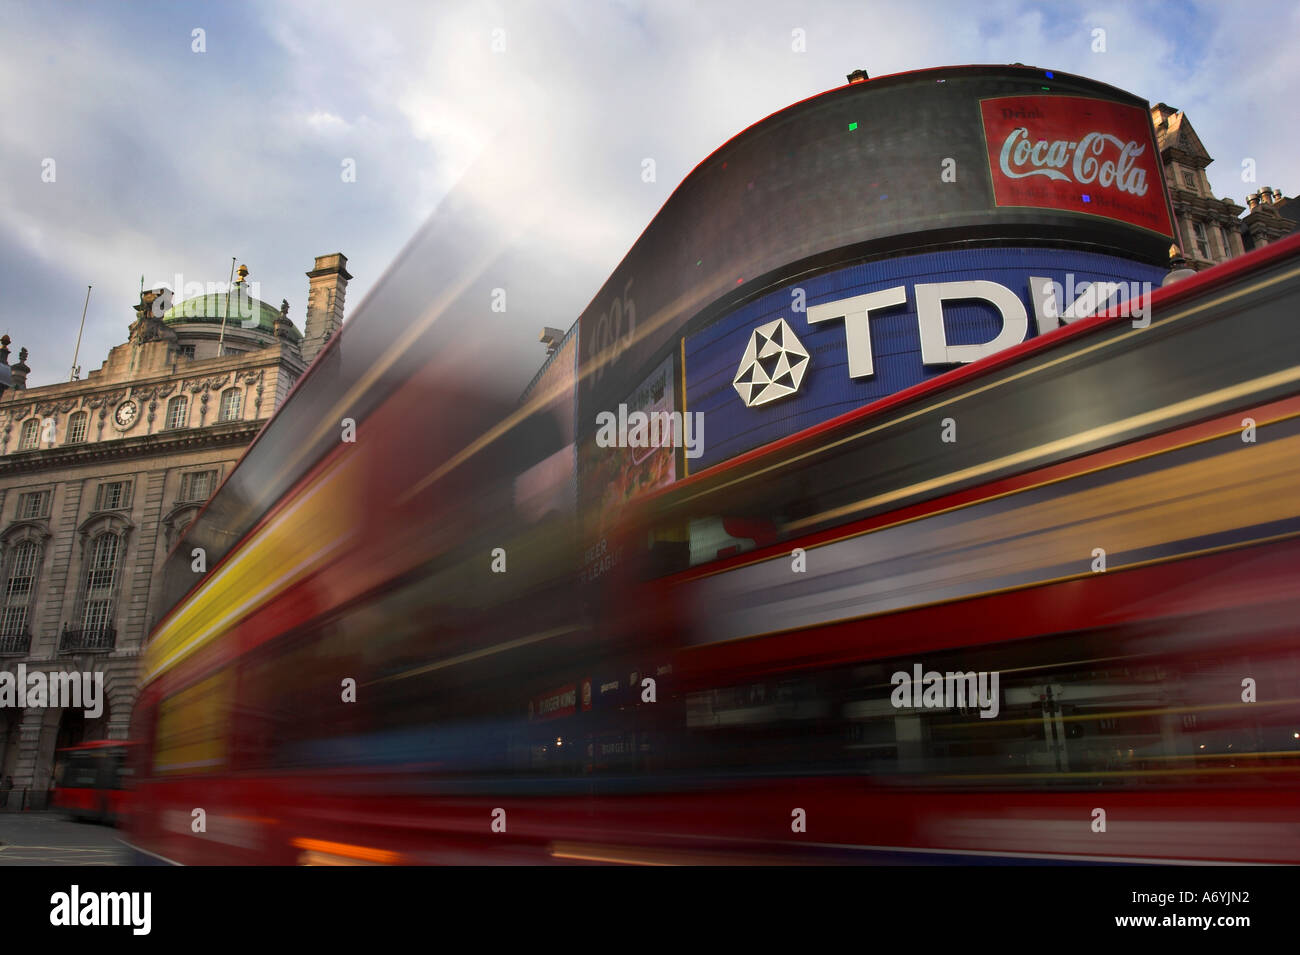 Picadilly Circus, London with bright billboards and two red double decker bus's blurred in foreground. - Stock Image